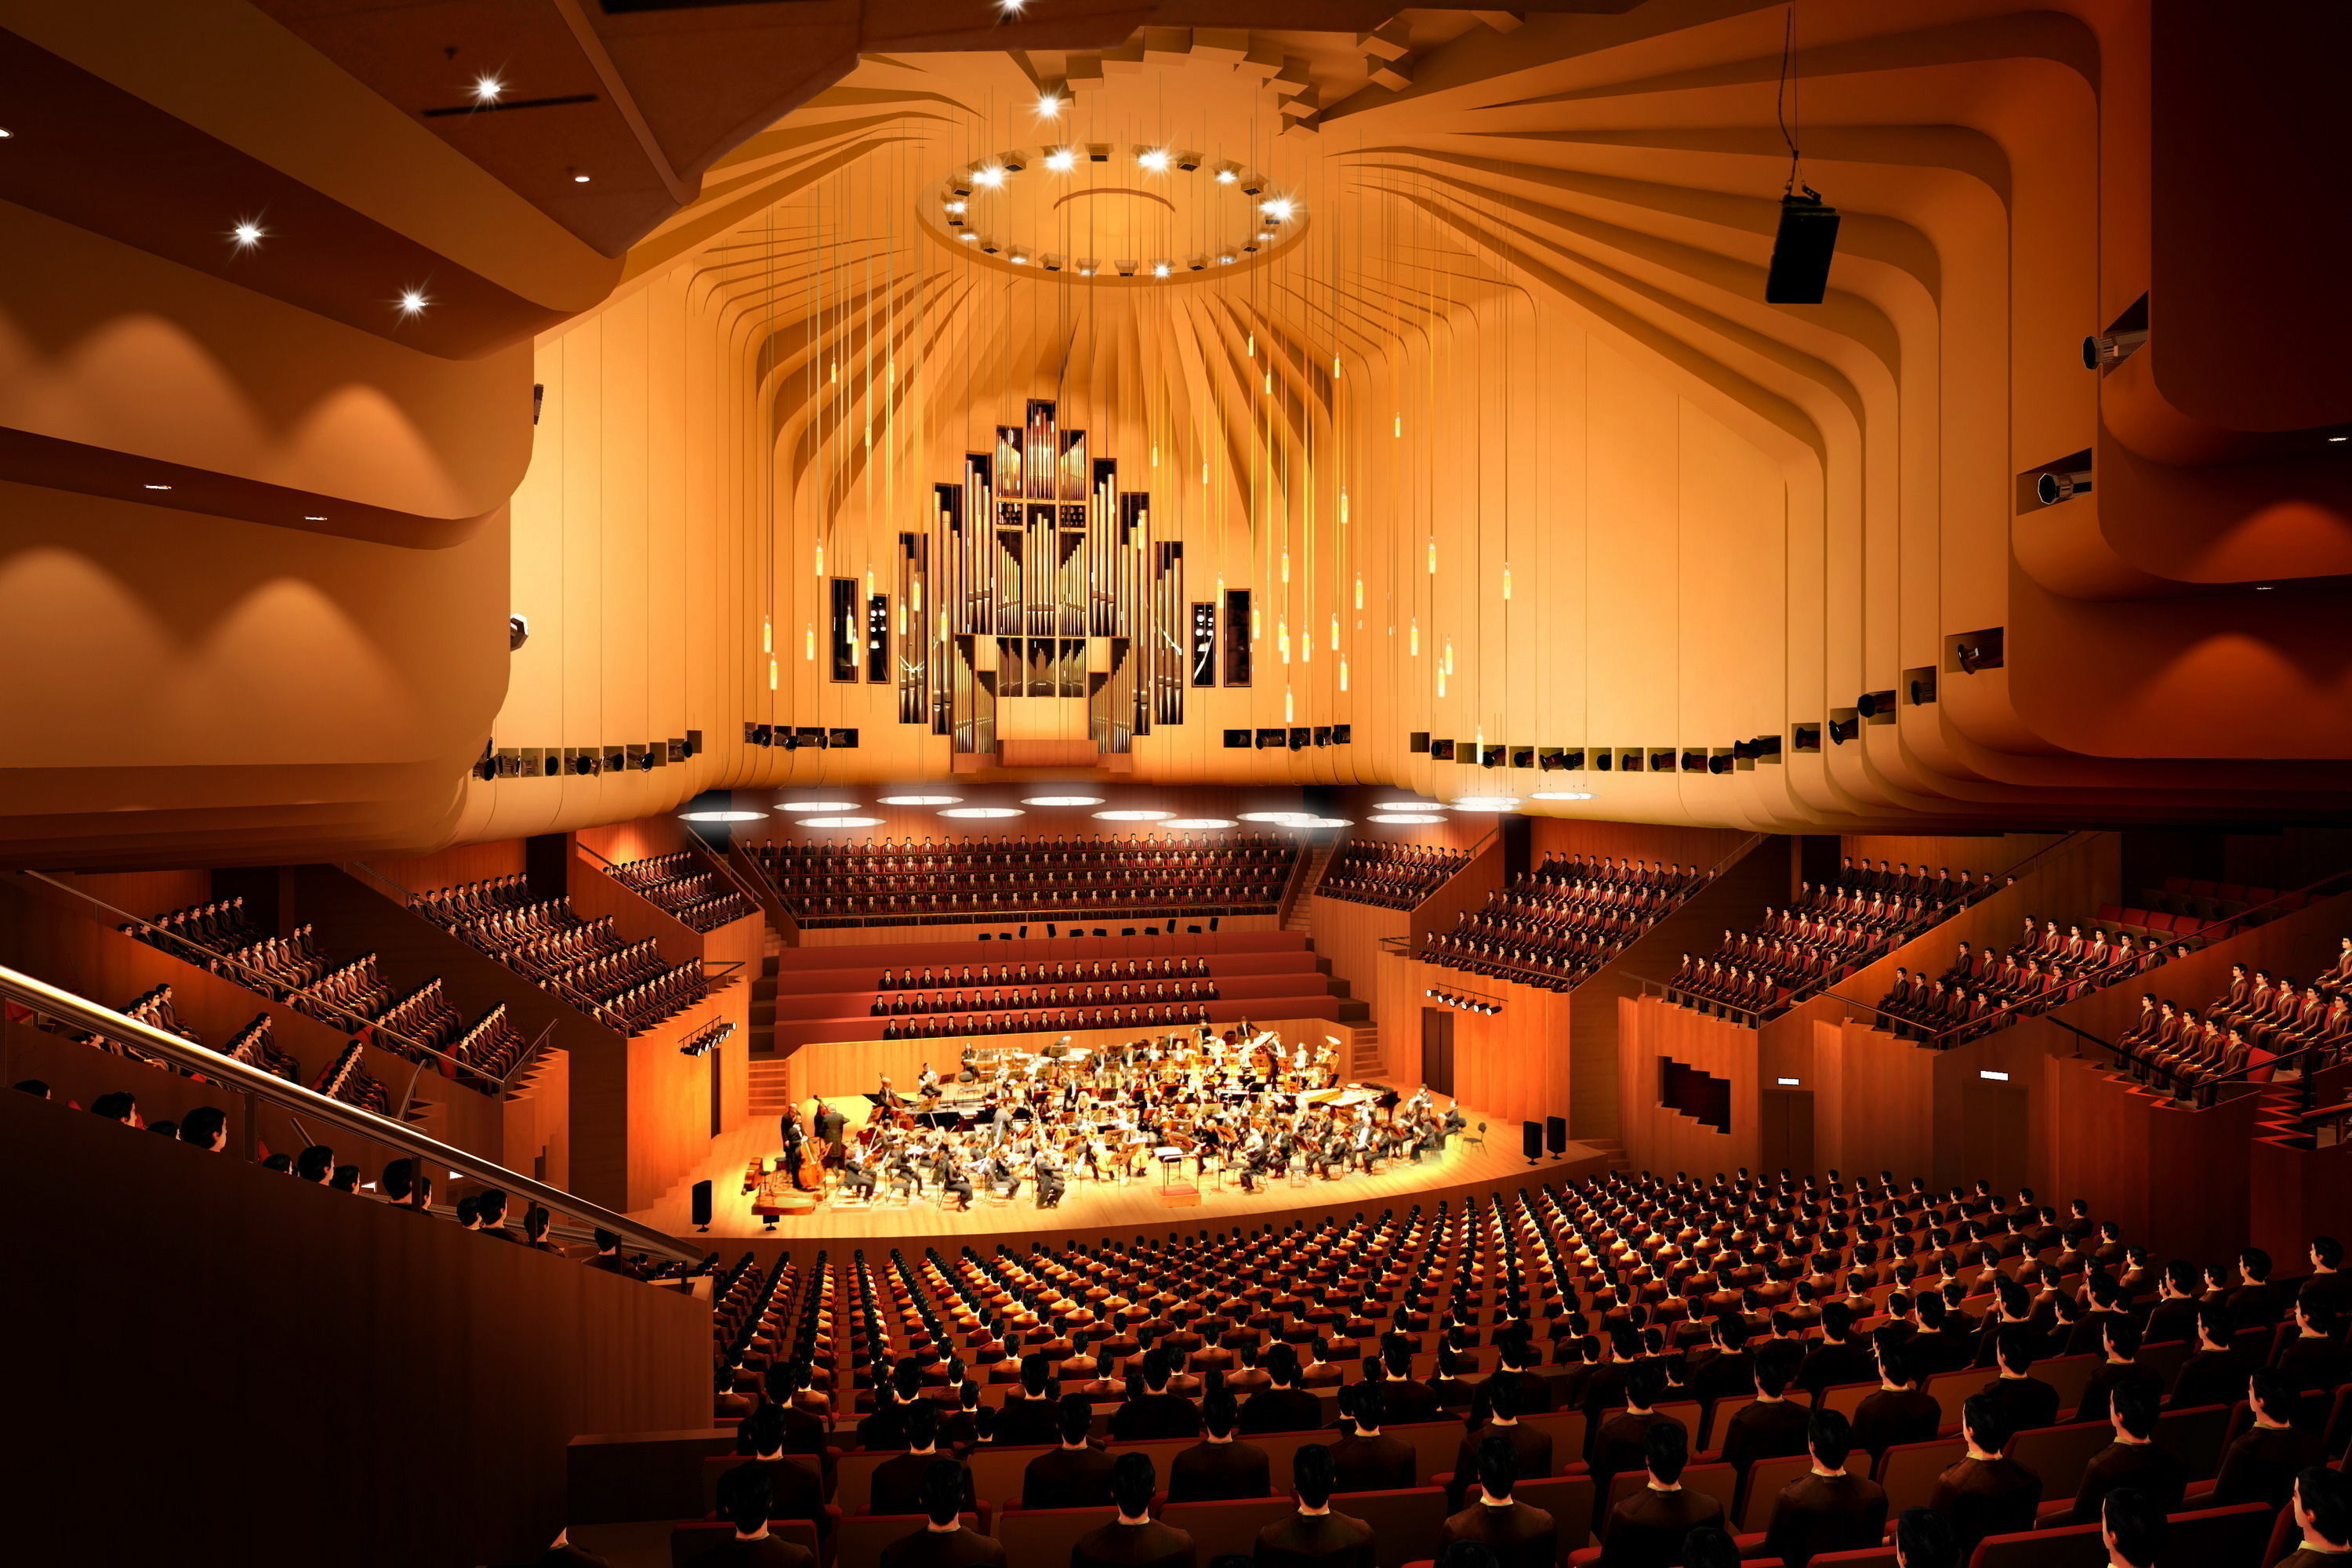 Elegant orchestra theater 3d model max 3ds for Orchestra house